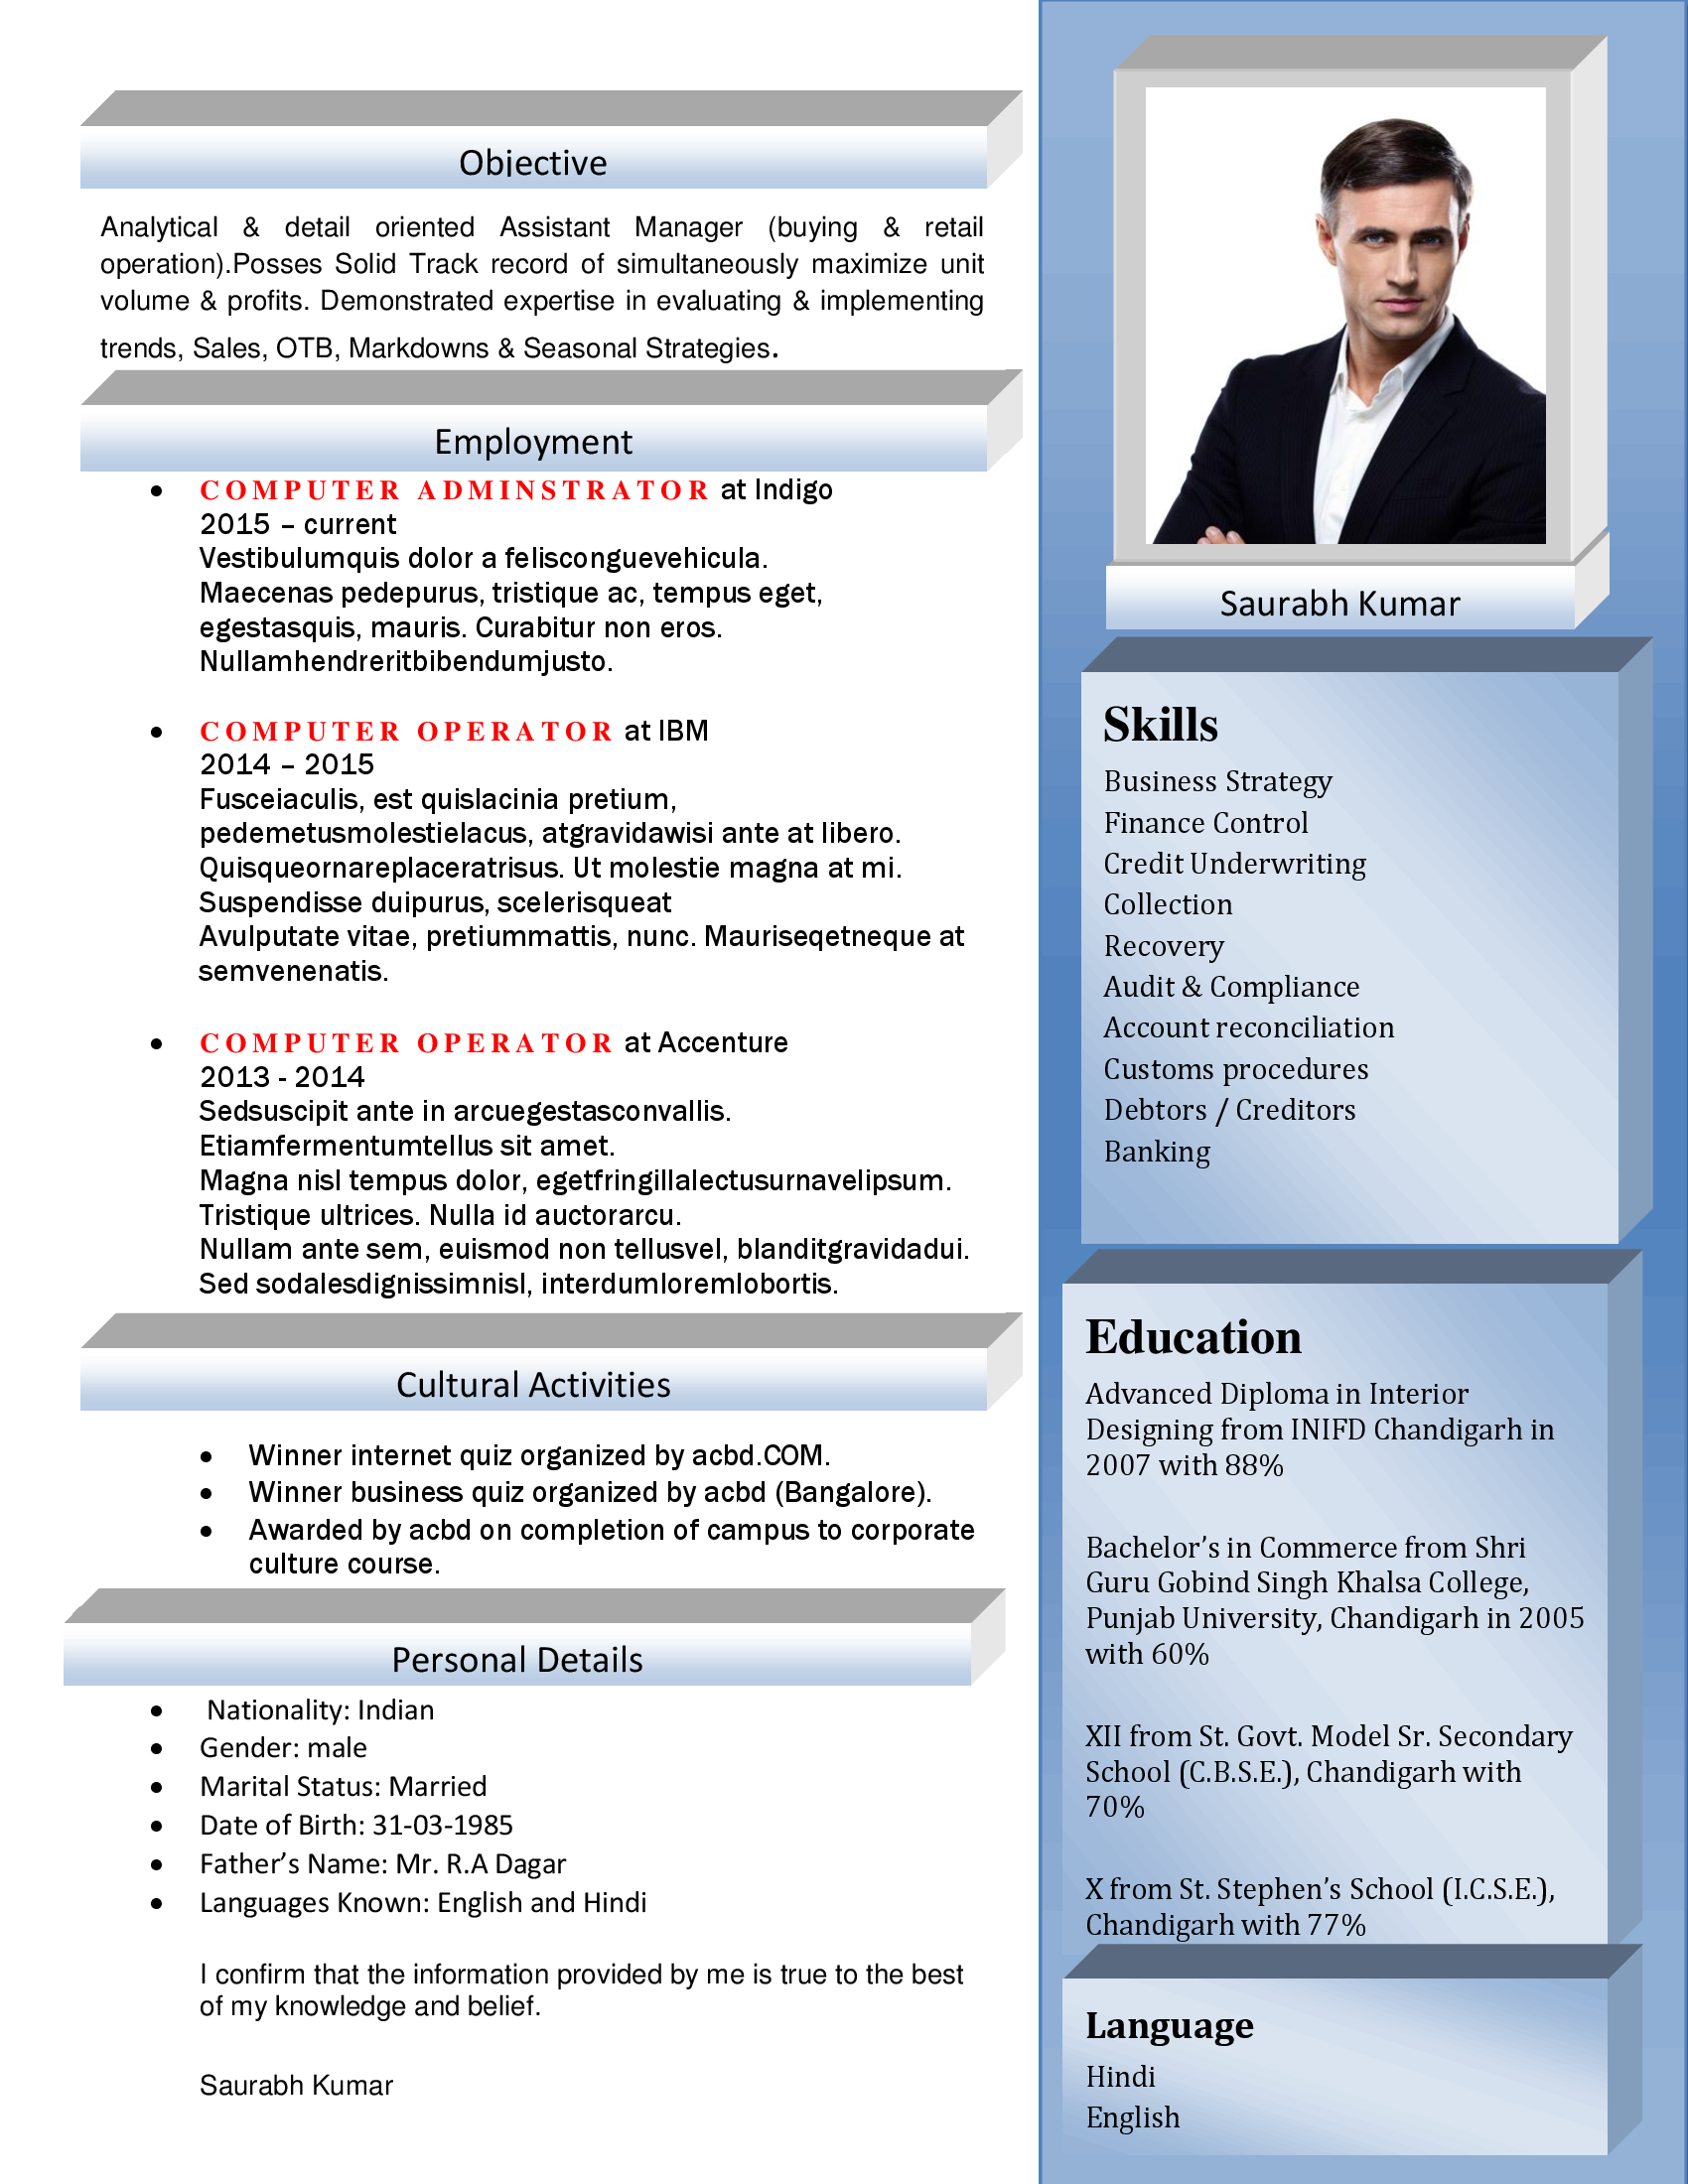 HR Executive Resume Resume for HR Executive